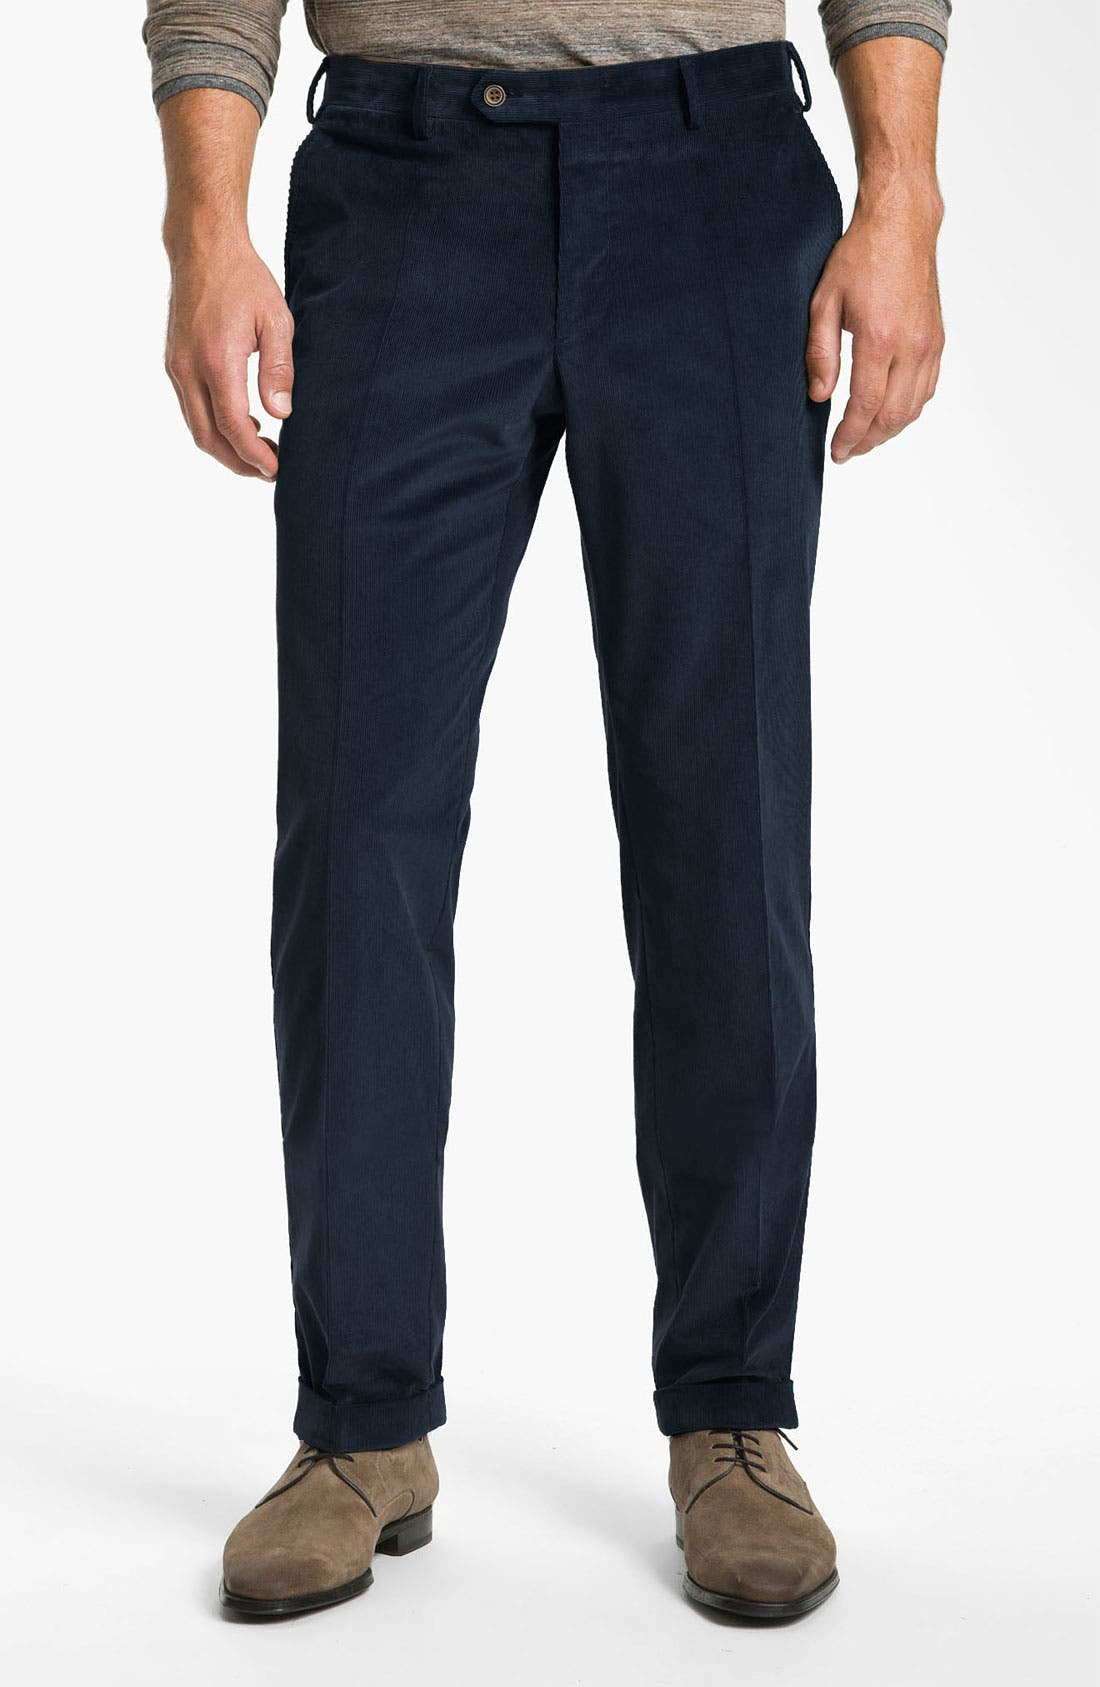 Alternate Image 1 Selected - Canali Flat Front Corduroy Pants